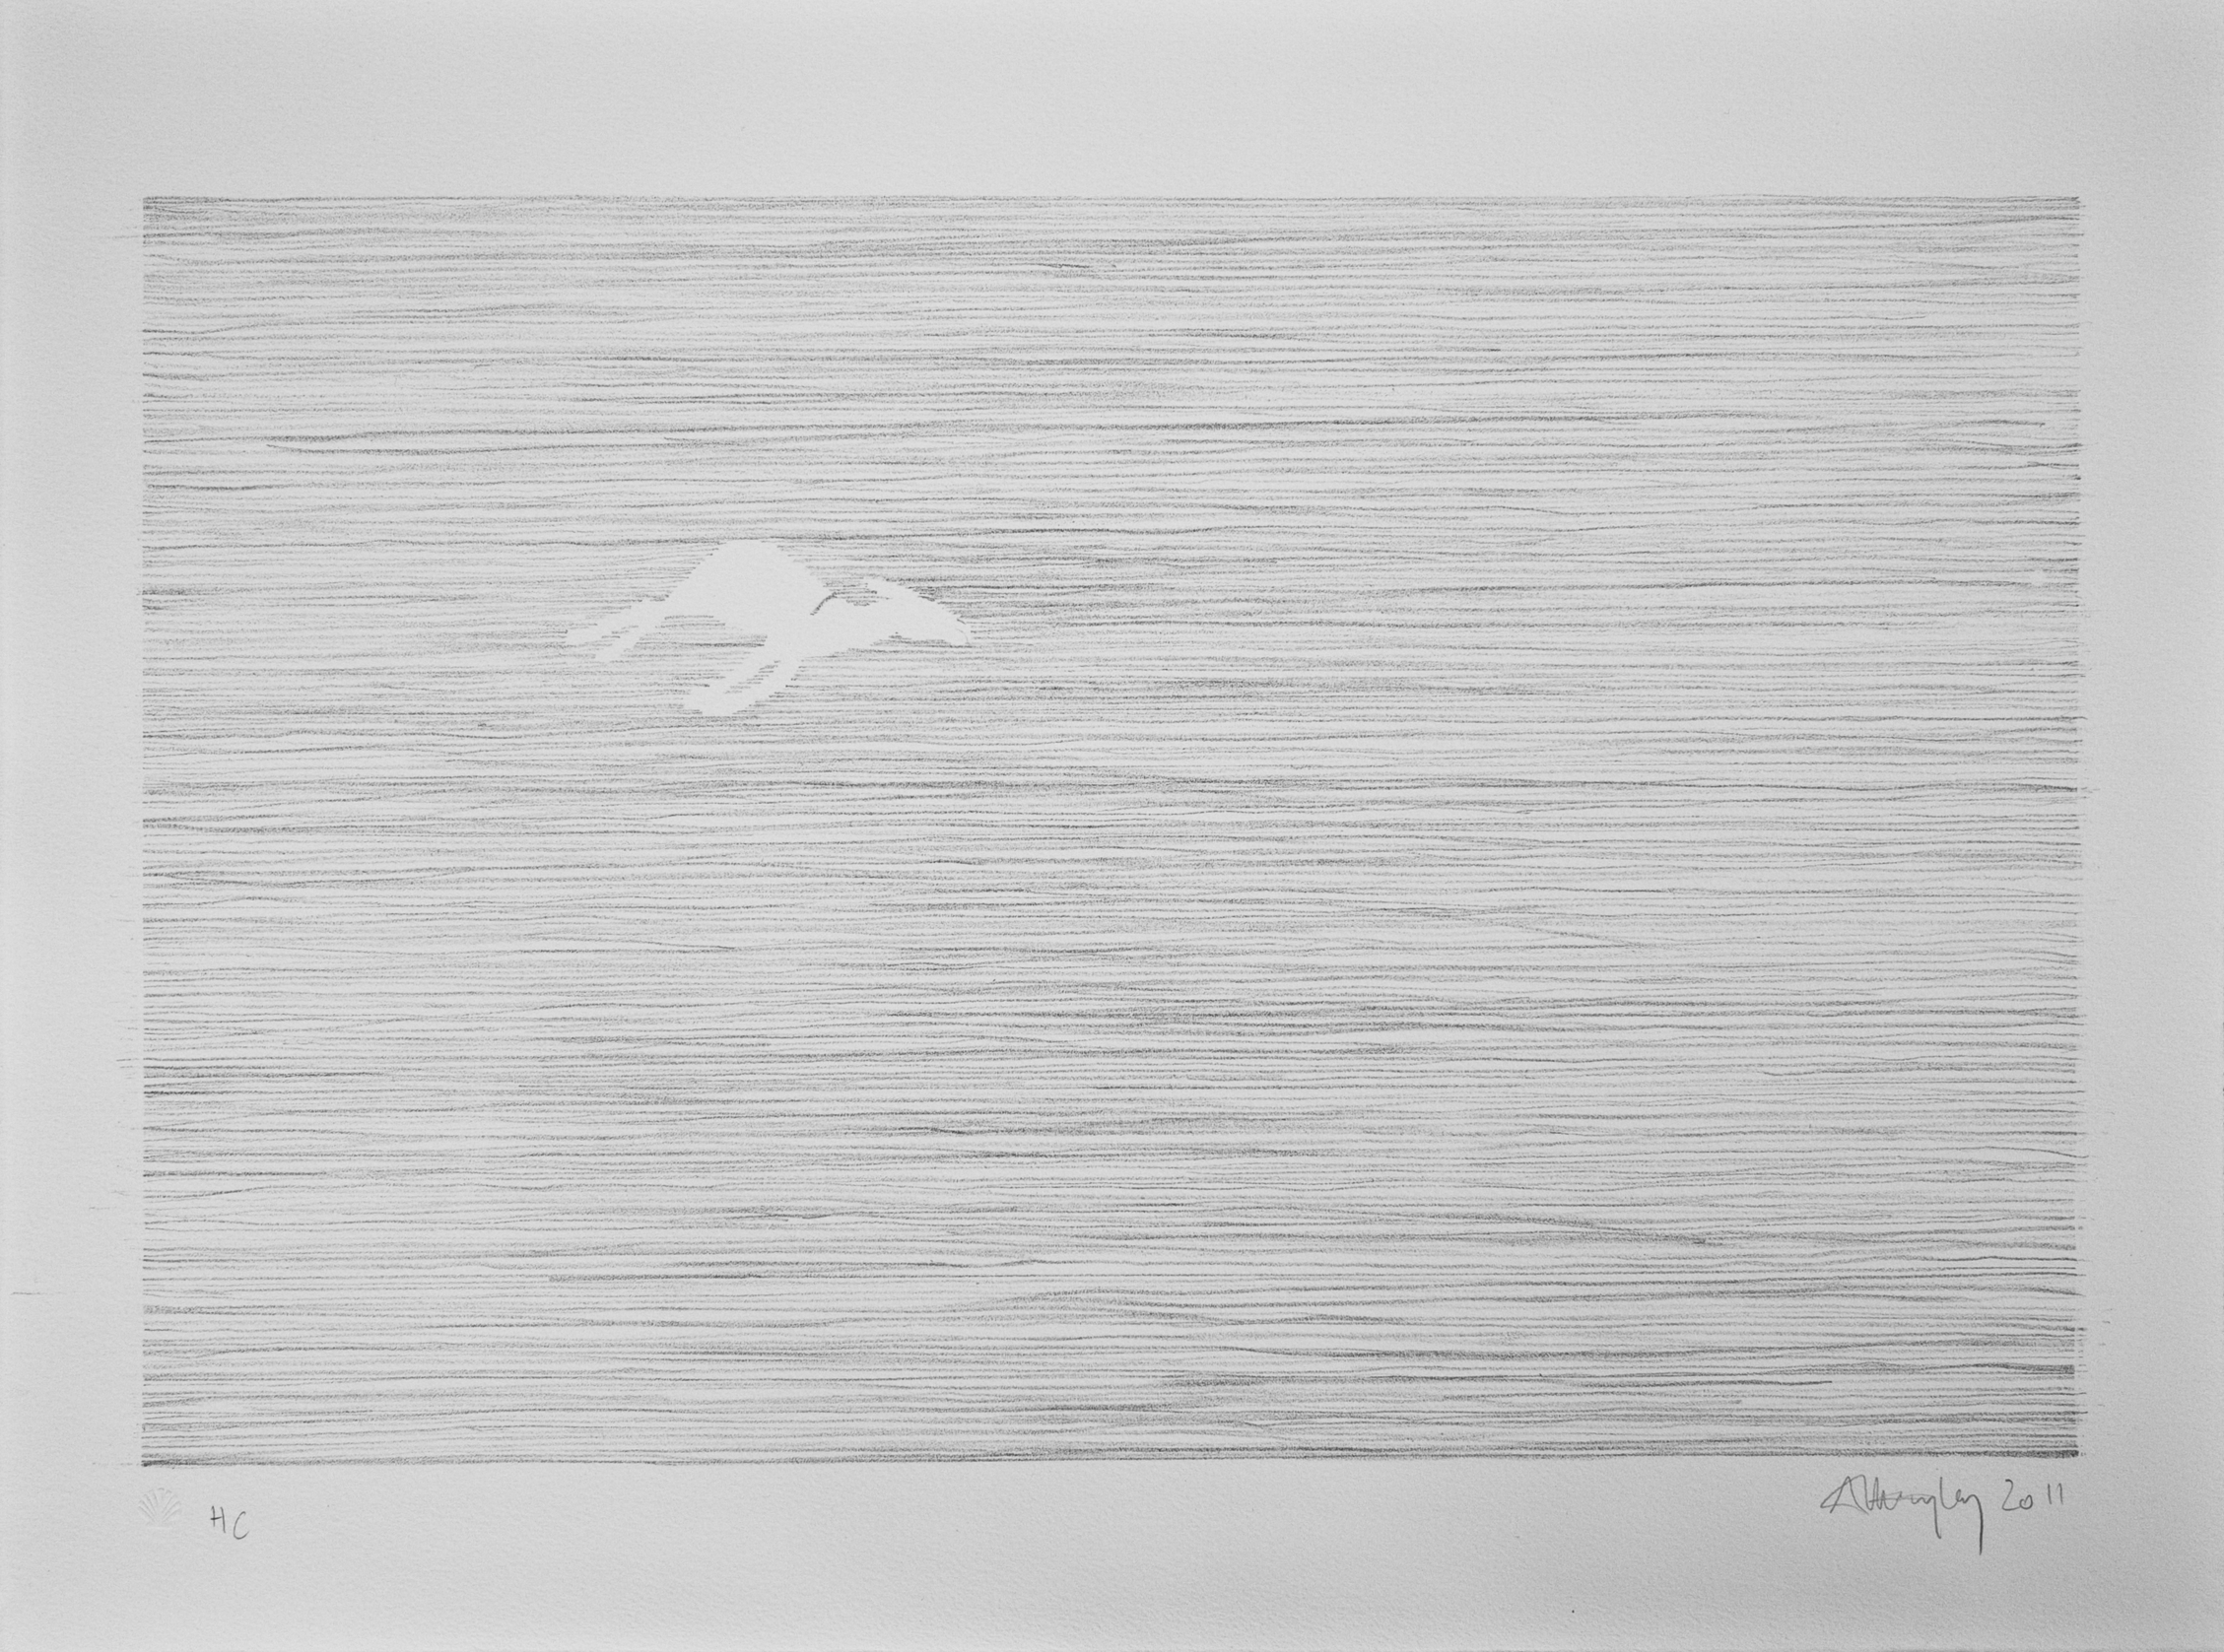 Lithograph, edition of 10  2011,58x43cm